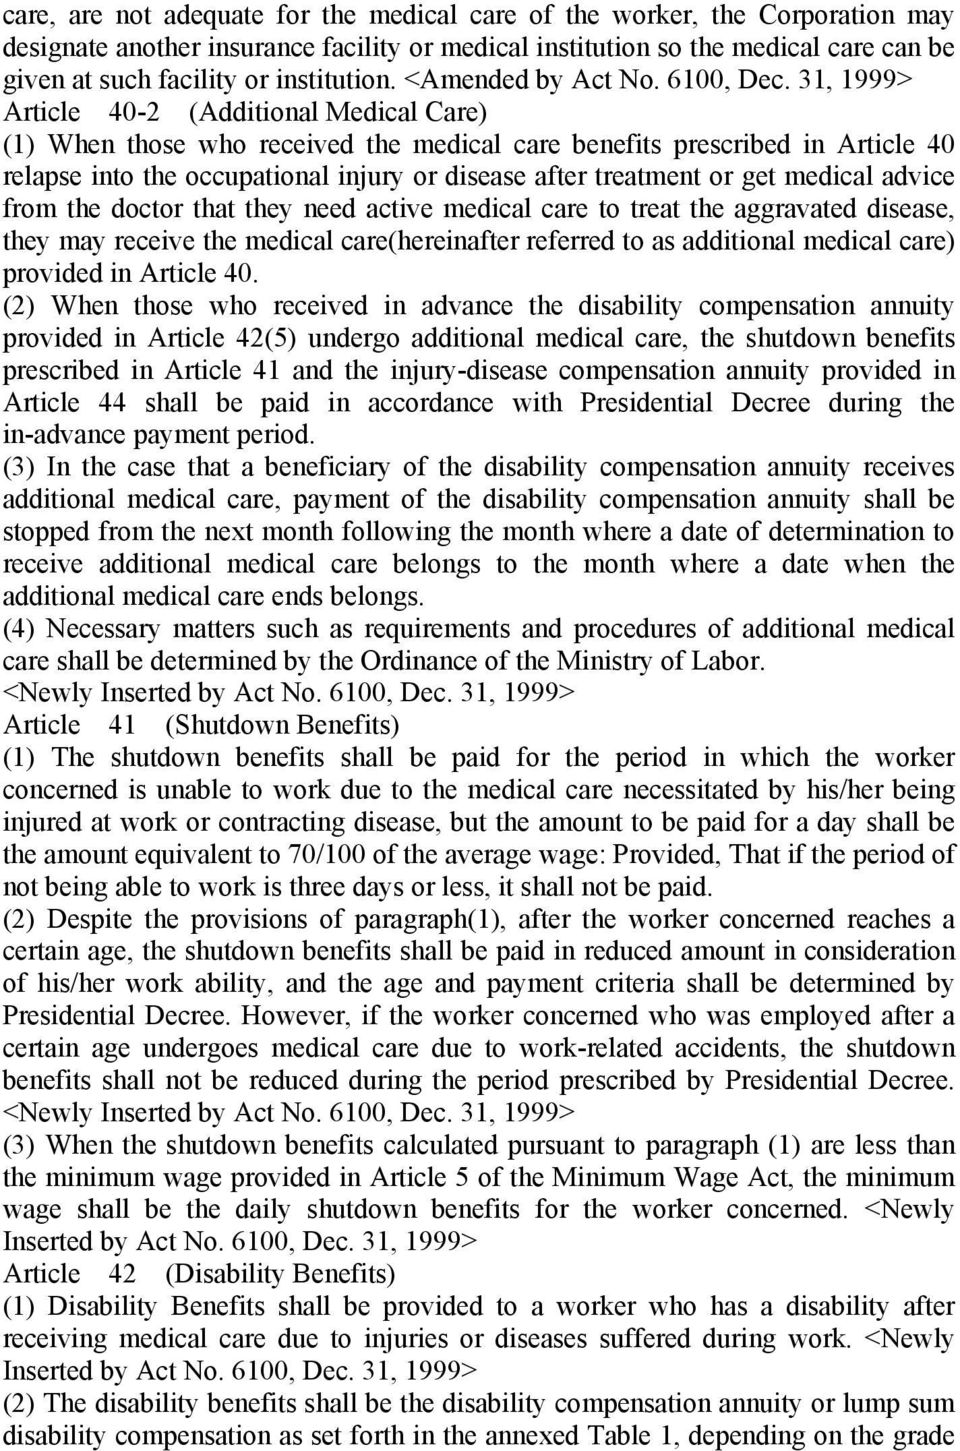 31, 1999> Article 40-2 (Additional Medical Care) (1) When those who received the medical care benefits prescribed in Article 40 relapse into the occupational injury or disease after treatment or get